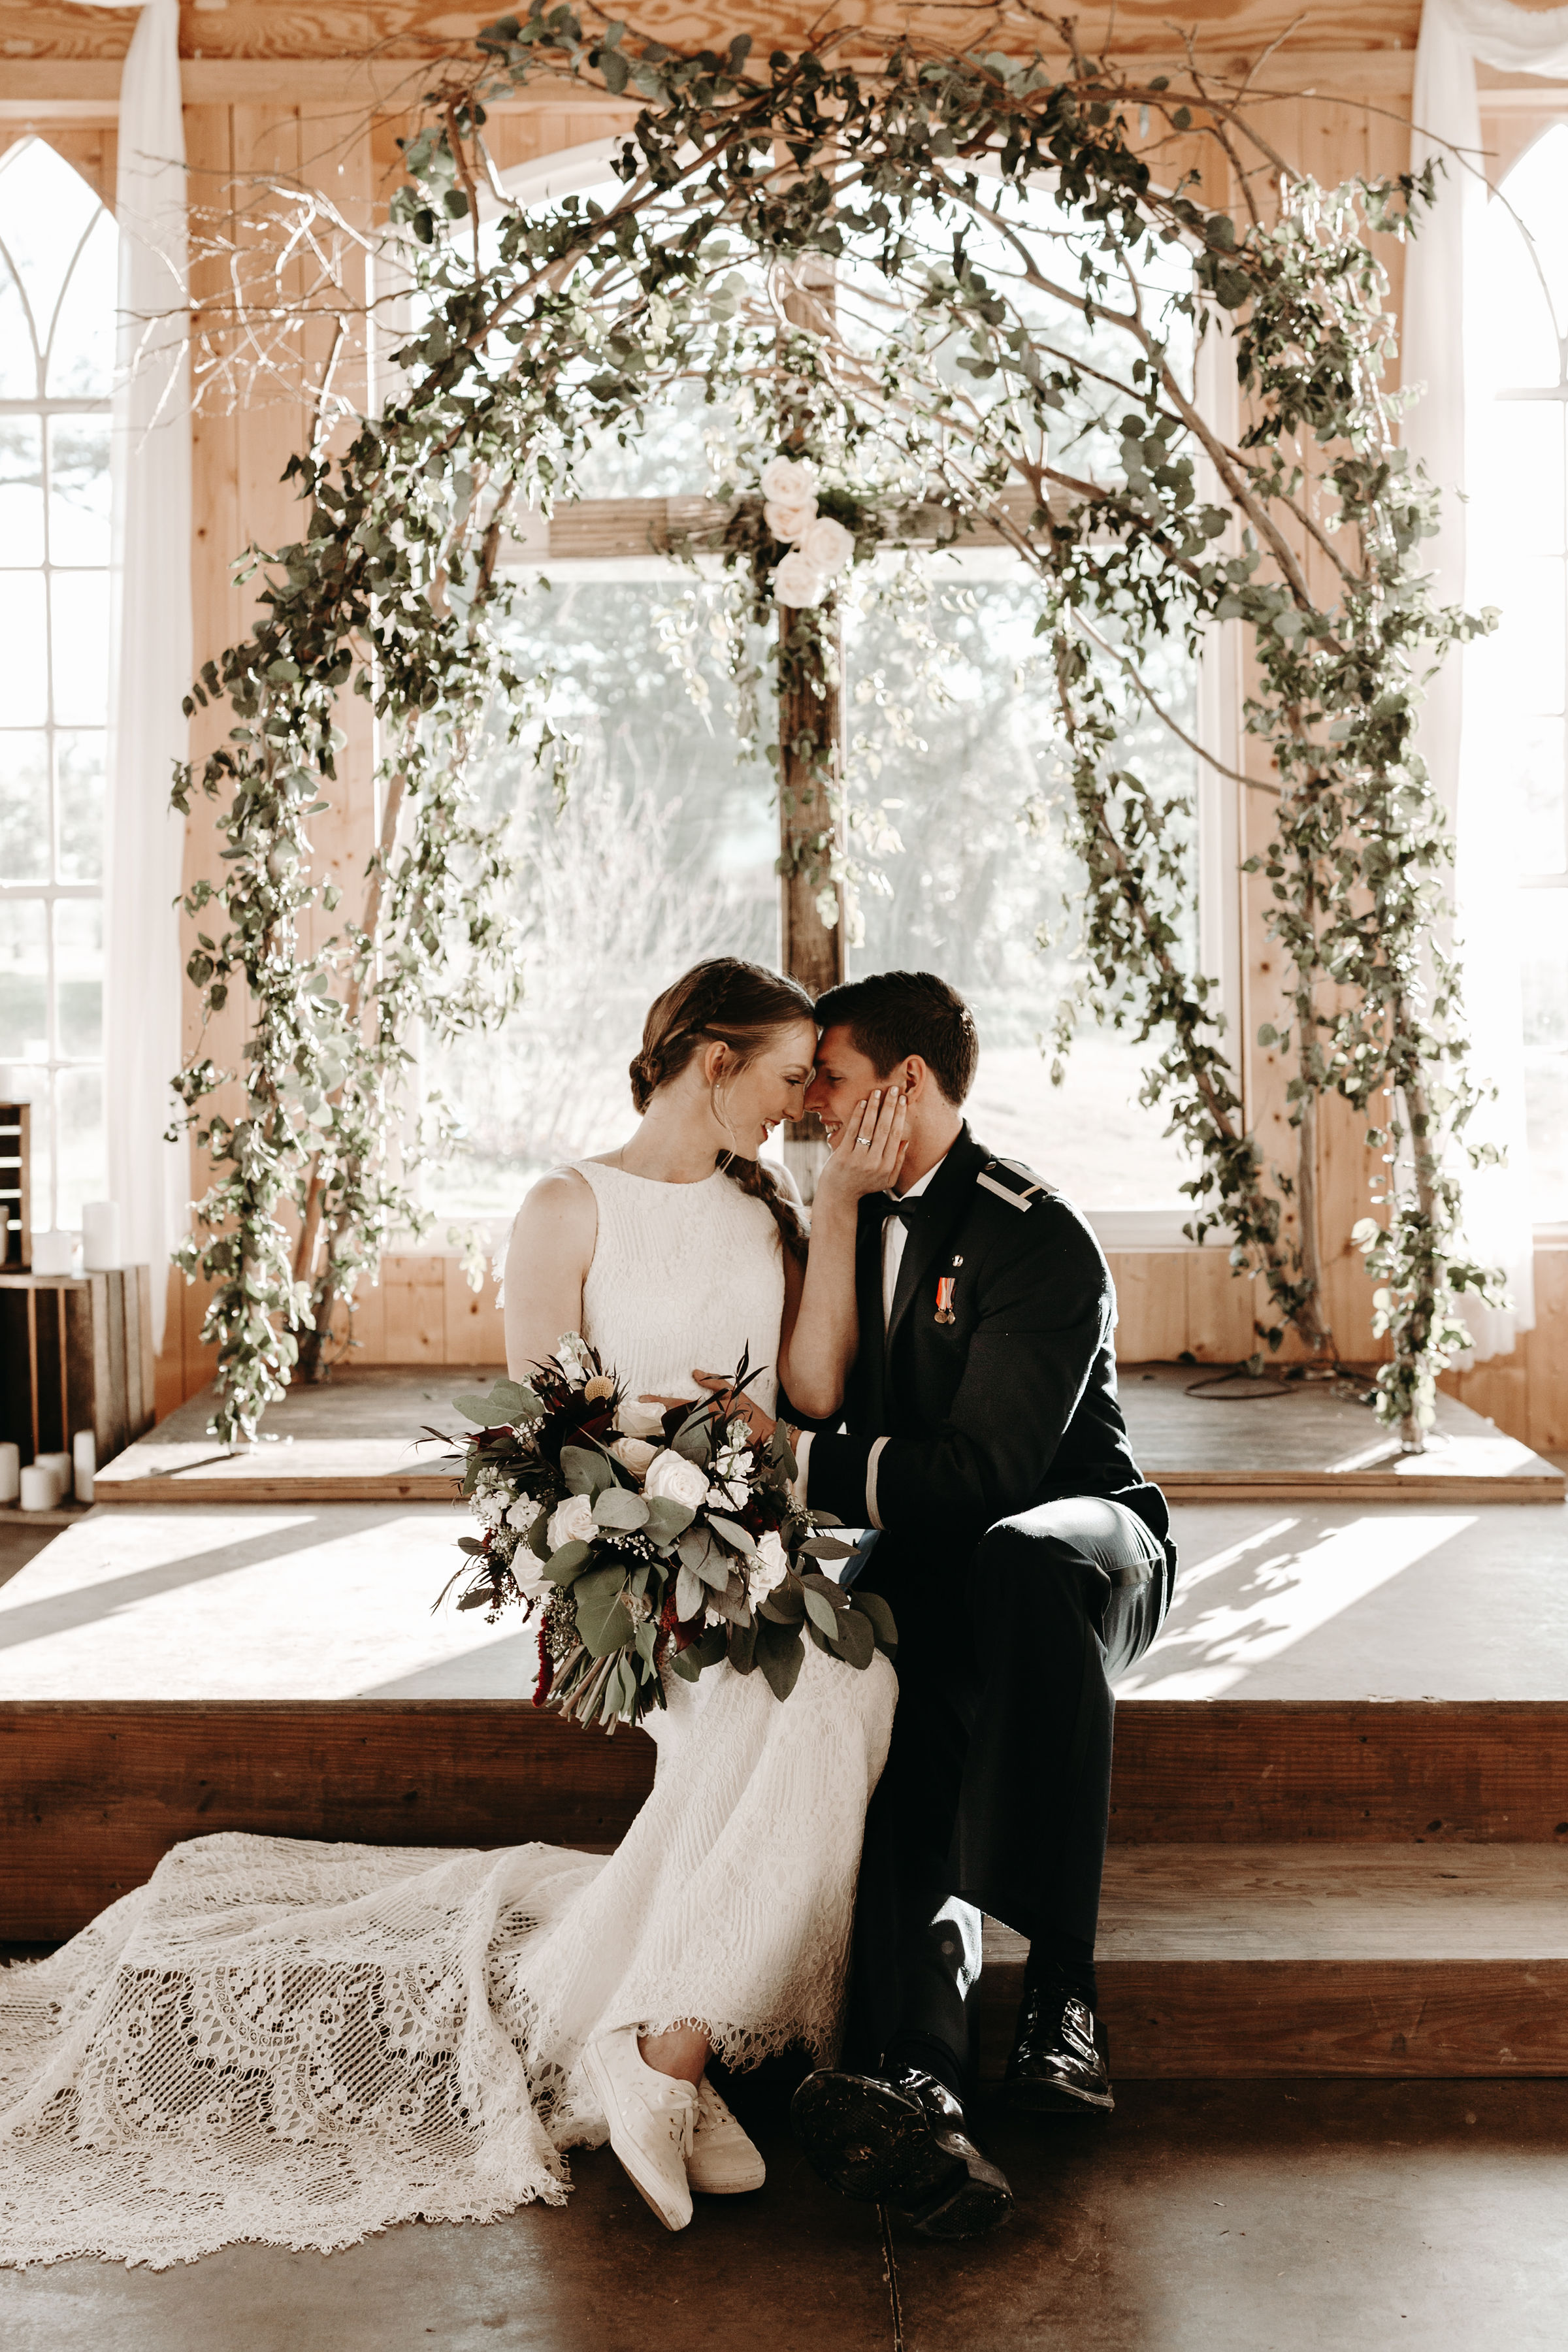 """- """"Breanna shot our engagement and wedding photos! She was super easy to work with and the photos are beautiful! My husband and I are so grateful she was willing to drive to Texas for our wedding during the Christmas season. I can not recommend her enough! Thanks Breanna!"""""""